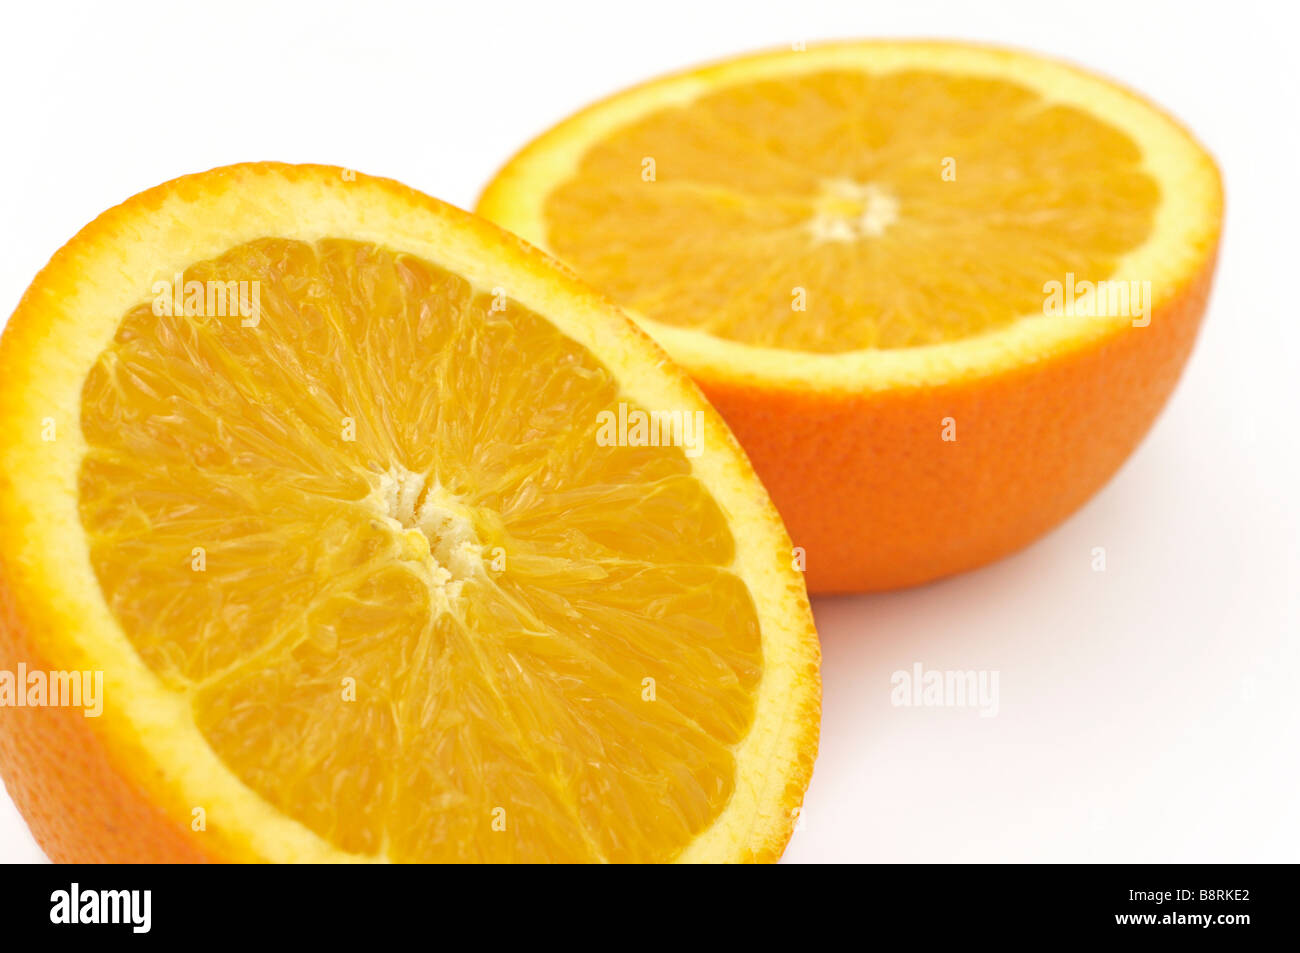 Orange Halves - Stock Image